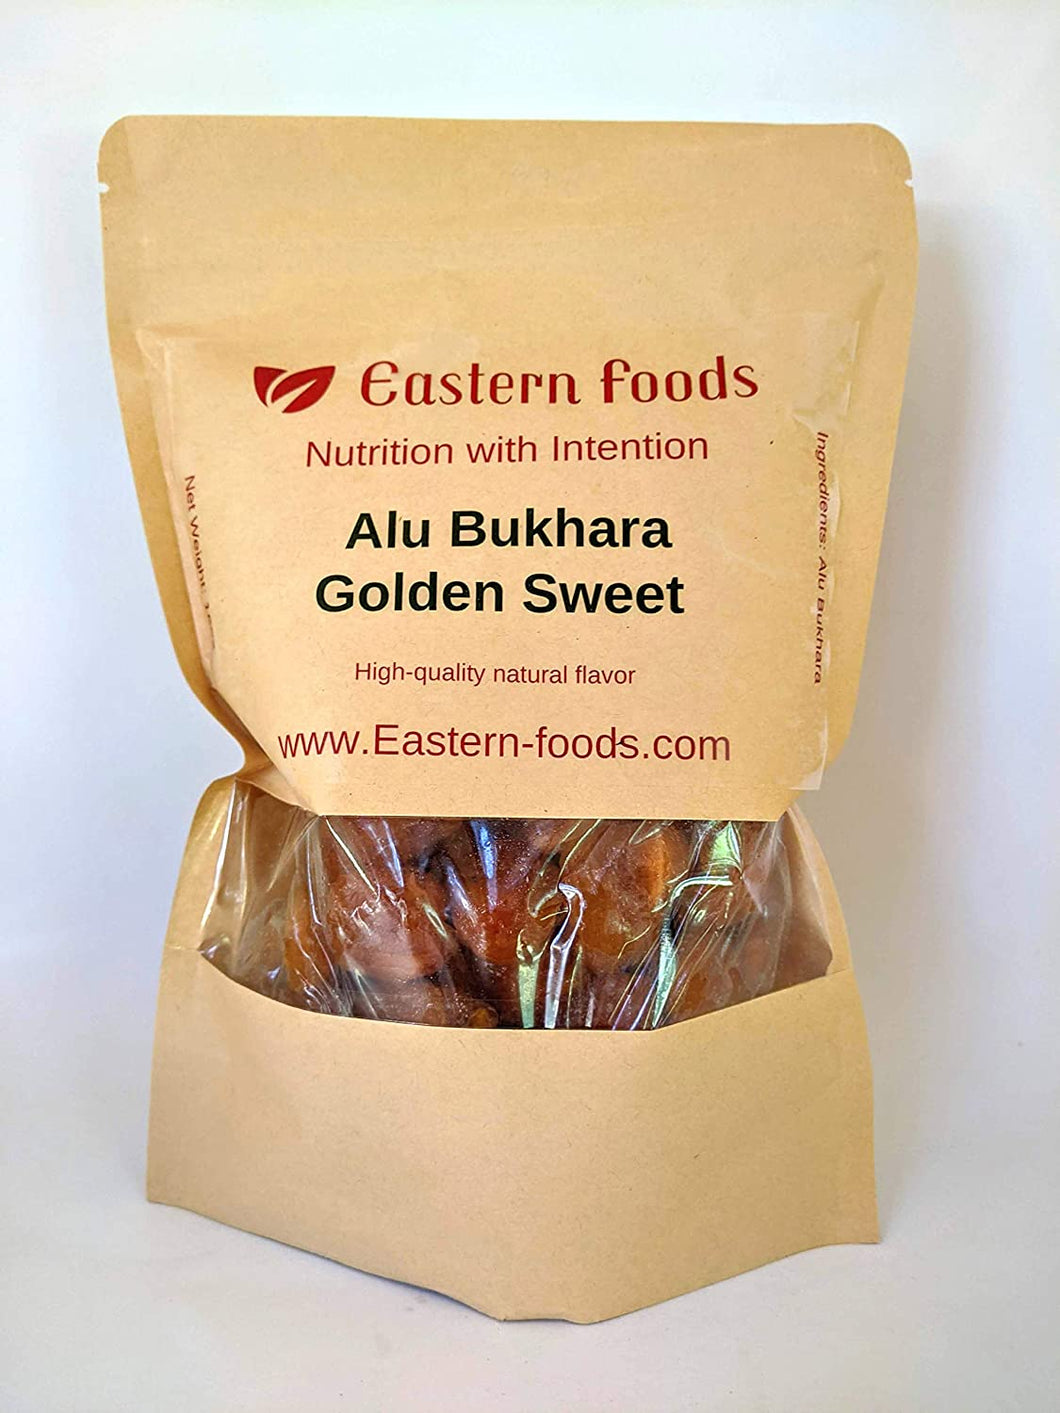 Eastern Foods Golden Aloo Bukhara Dried Plum, 1 lb. 1 lb Golden ALU BUKHARA DRY - DRY Golden PLUM - Golden ALOO BHUKARA- Golden ALU BOOKHARA